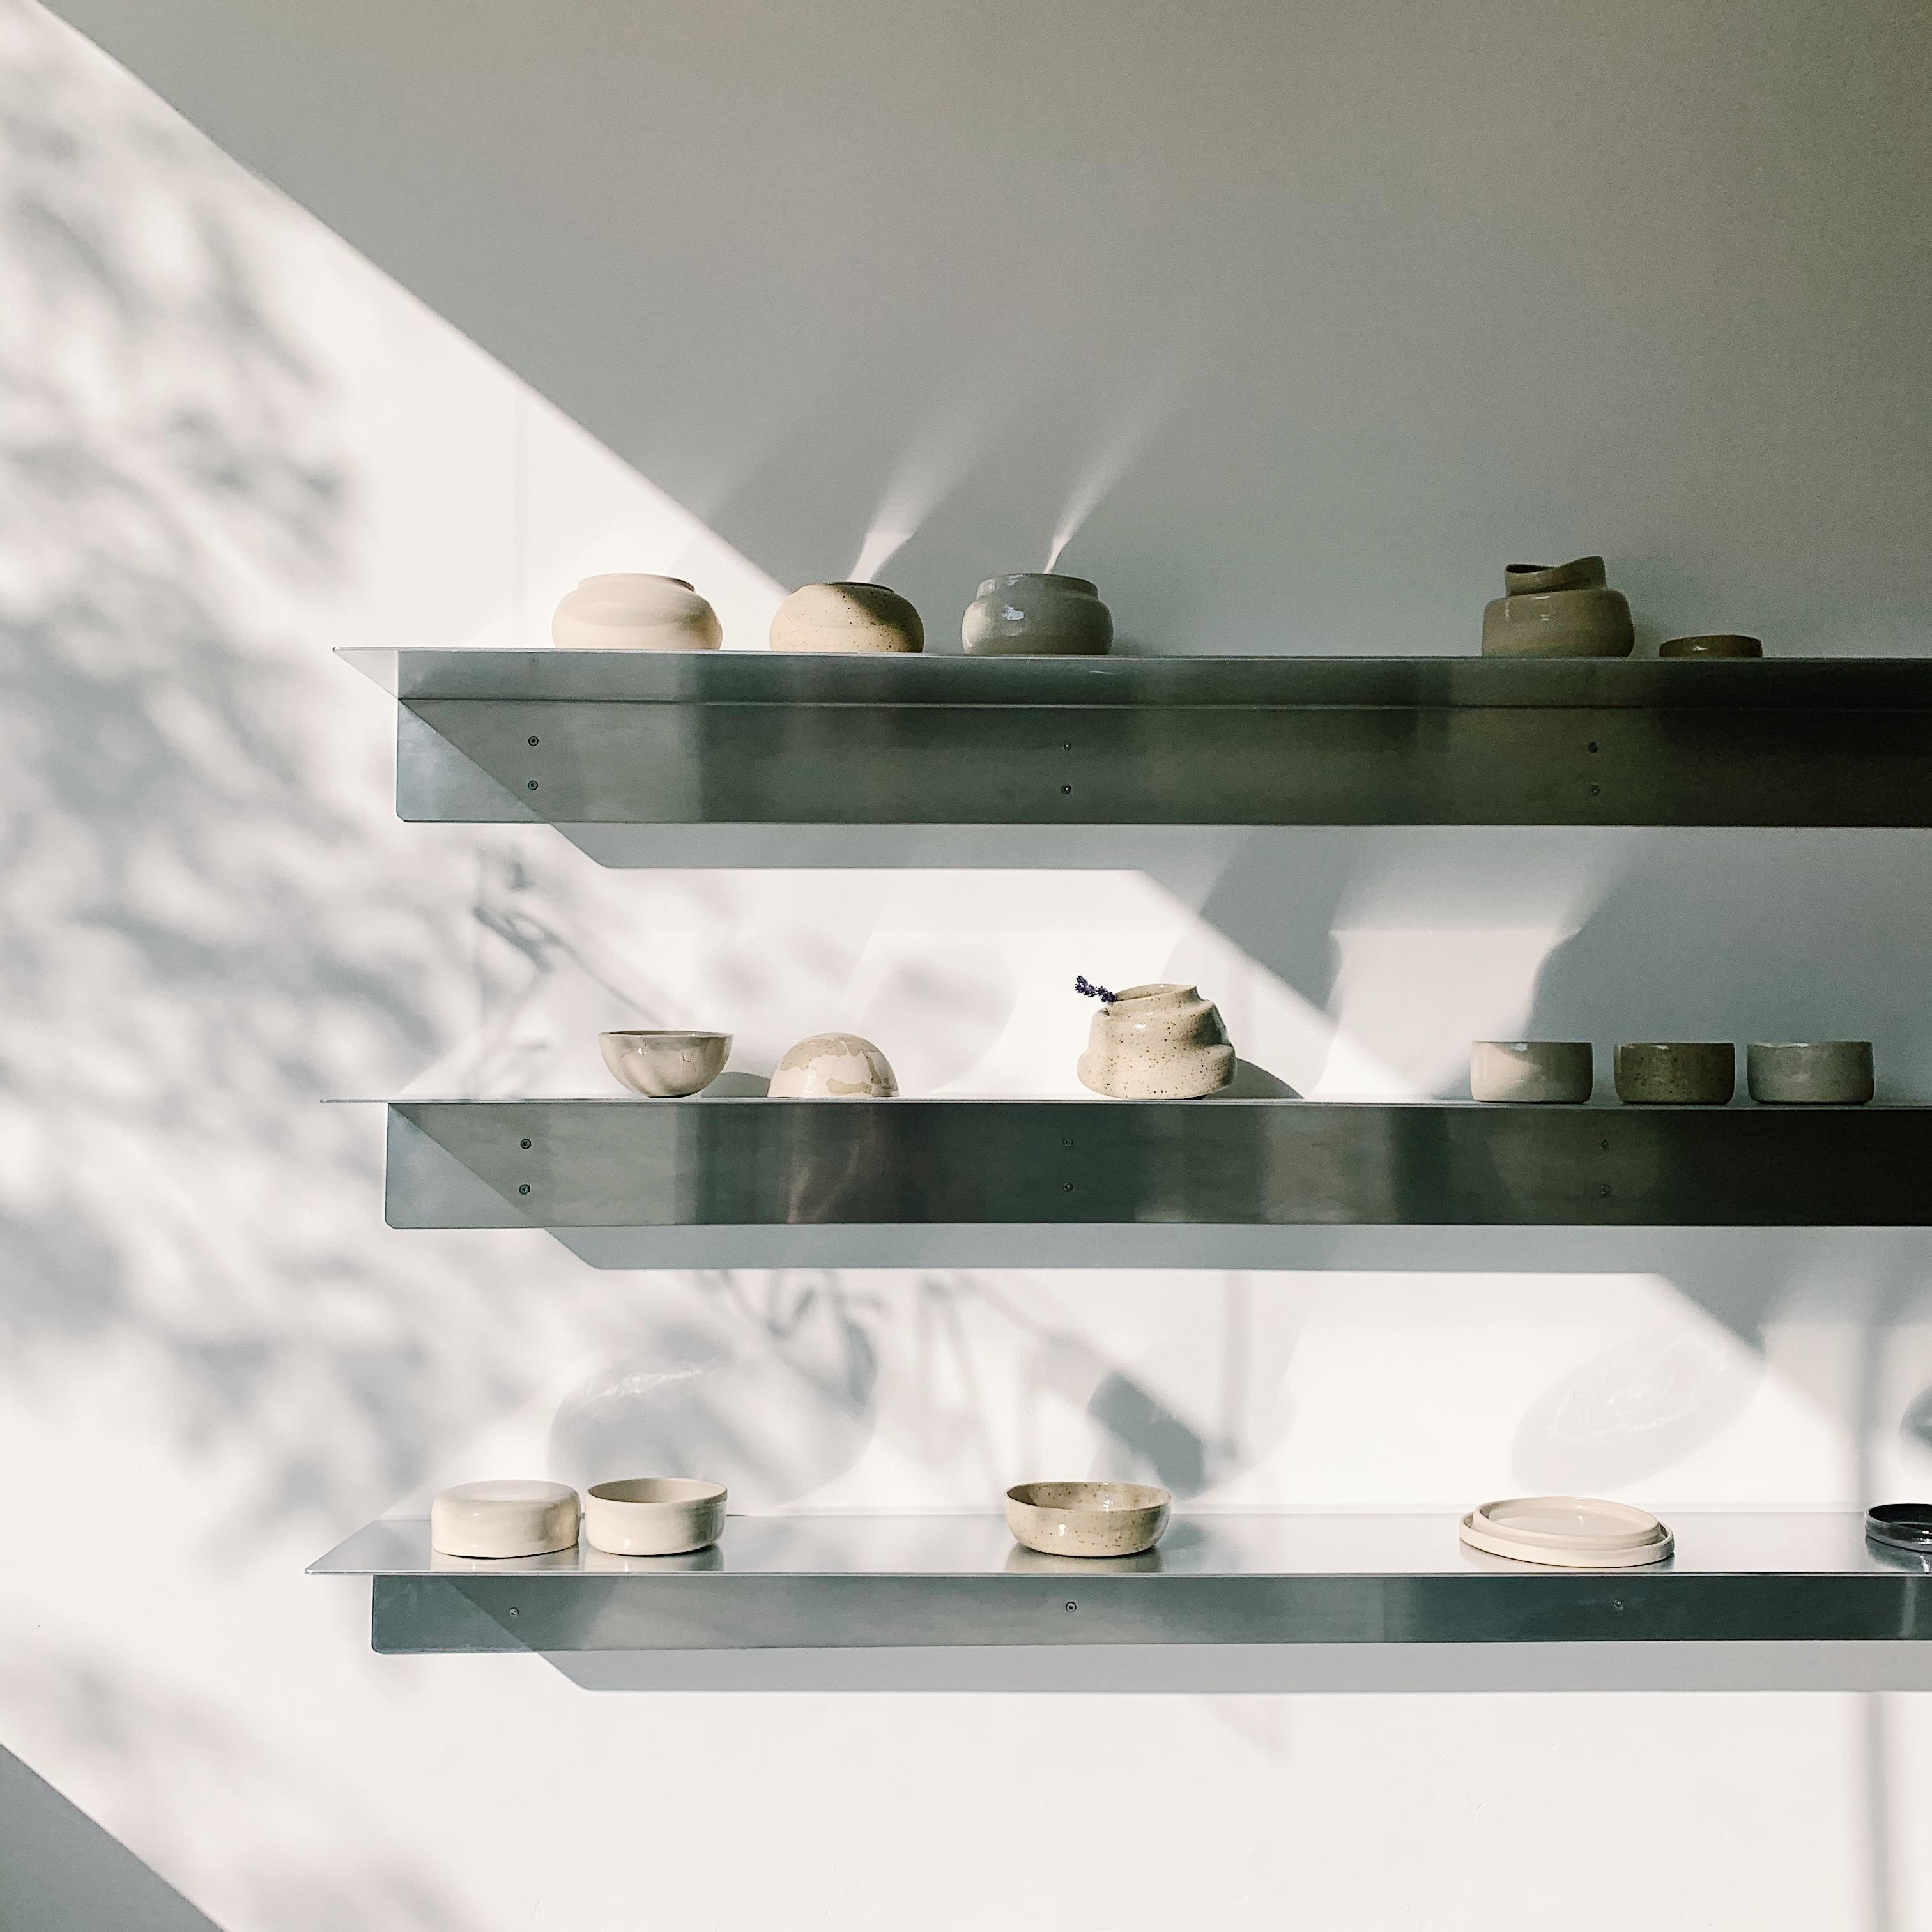 #ceramic #interiordesign #tableware #design #sunshine #handmade #couchliebt #skandistyle #womenbusiness #local #aachen